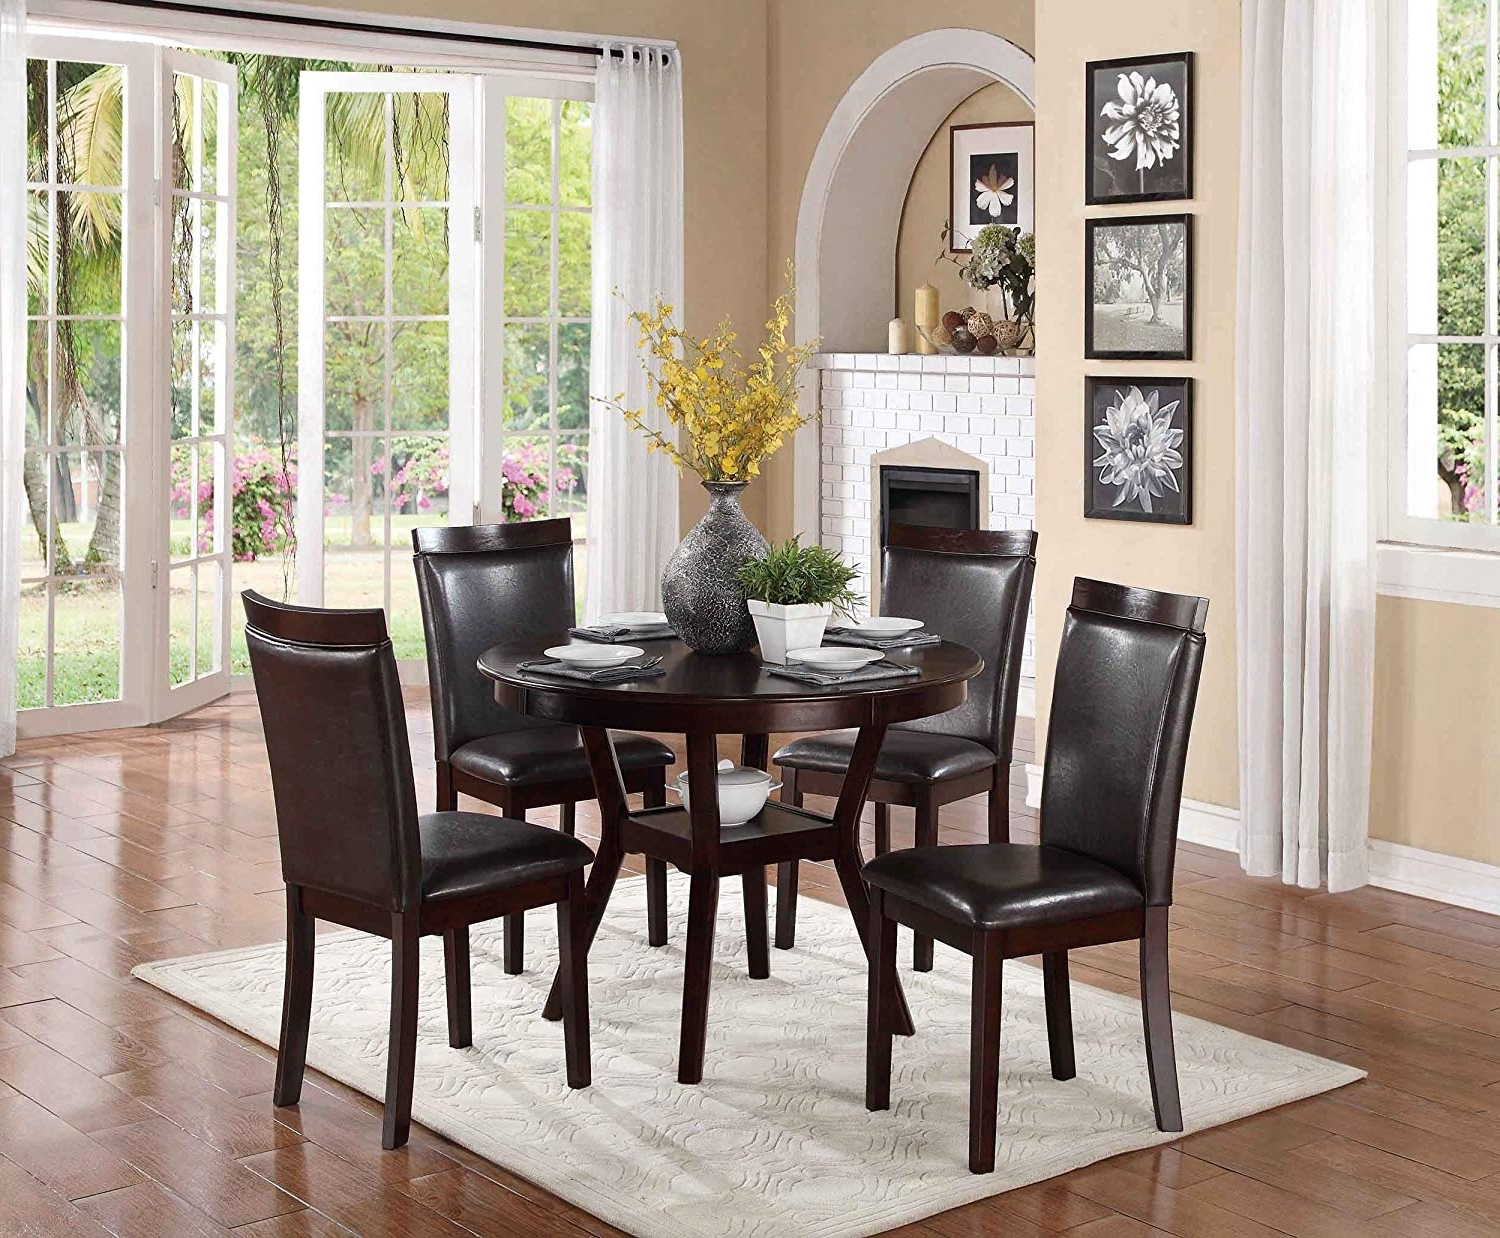 Grady 5 Piece Round Dining Sets With Recent Amazon – Homelegance Shankmen Round 5 Piece Dining Set, Espresso (View 9 of 25)